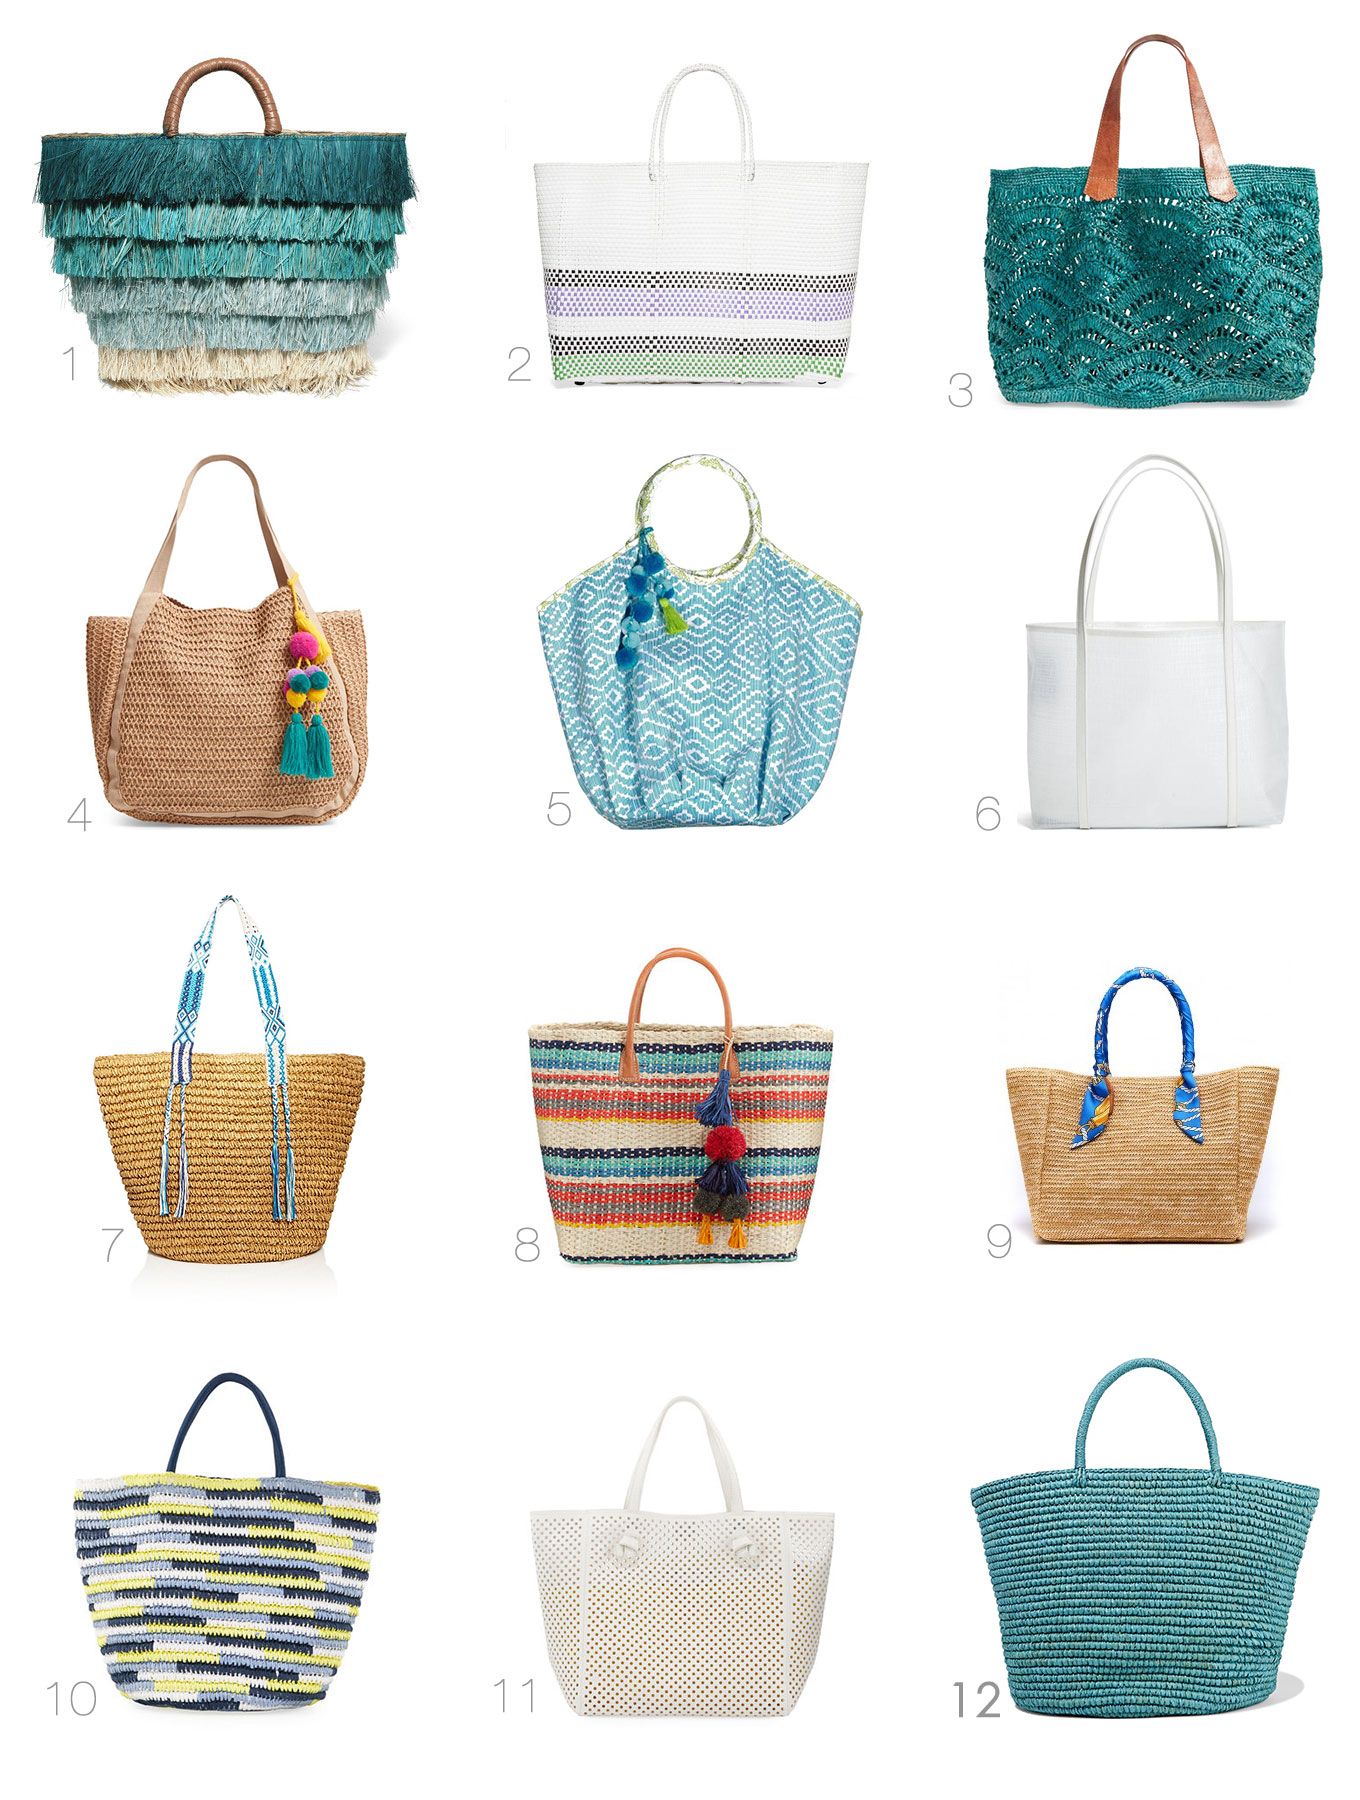 Ridgely Brode is always on the look out for a new bag and found 12 summer totes that are in her favorite blue color on her blog, Ridgely's Radar.